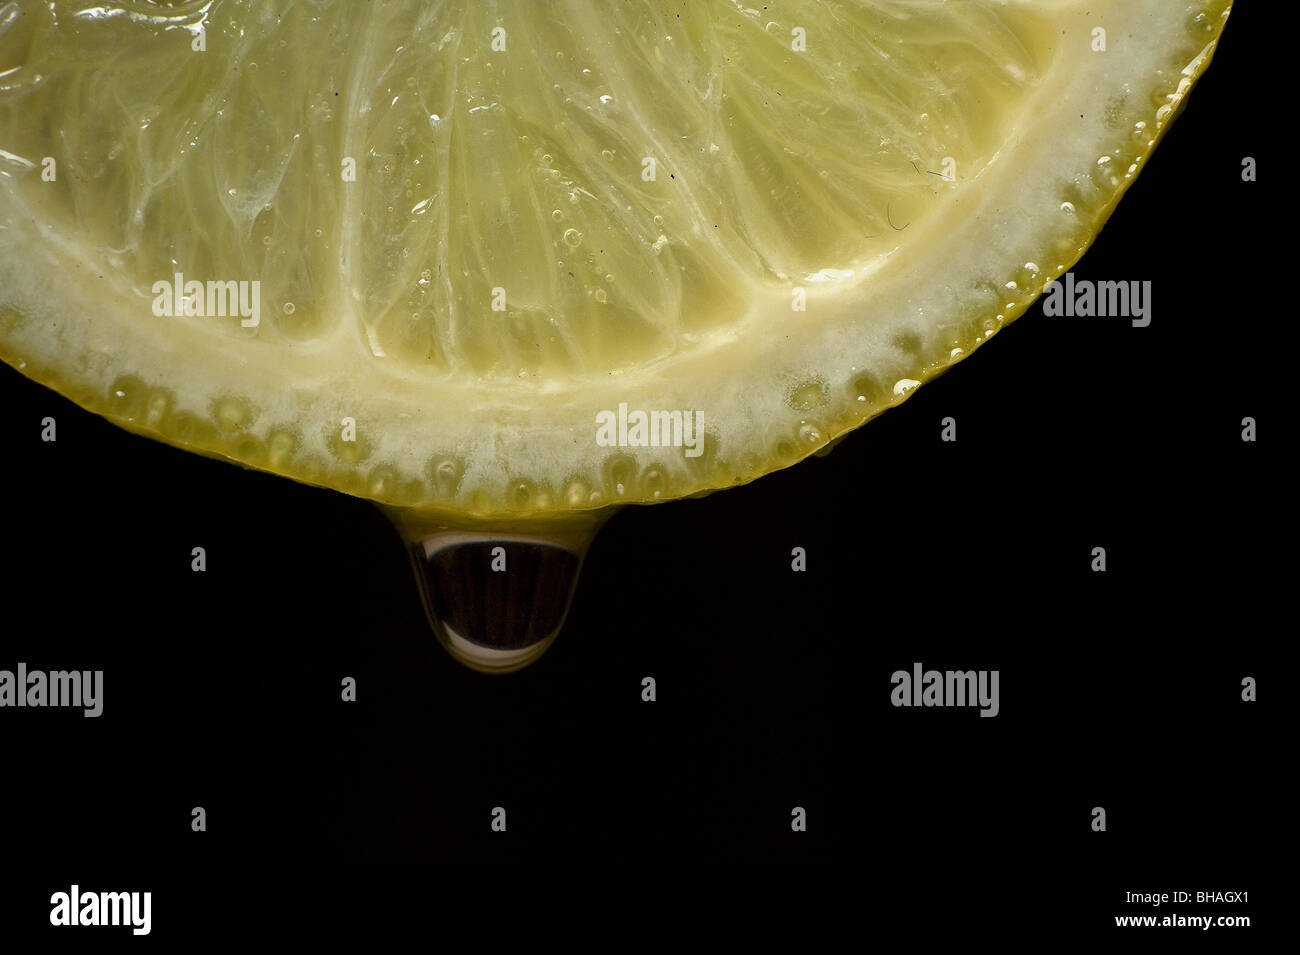 Slice of lime with water droplet - Stock Image